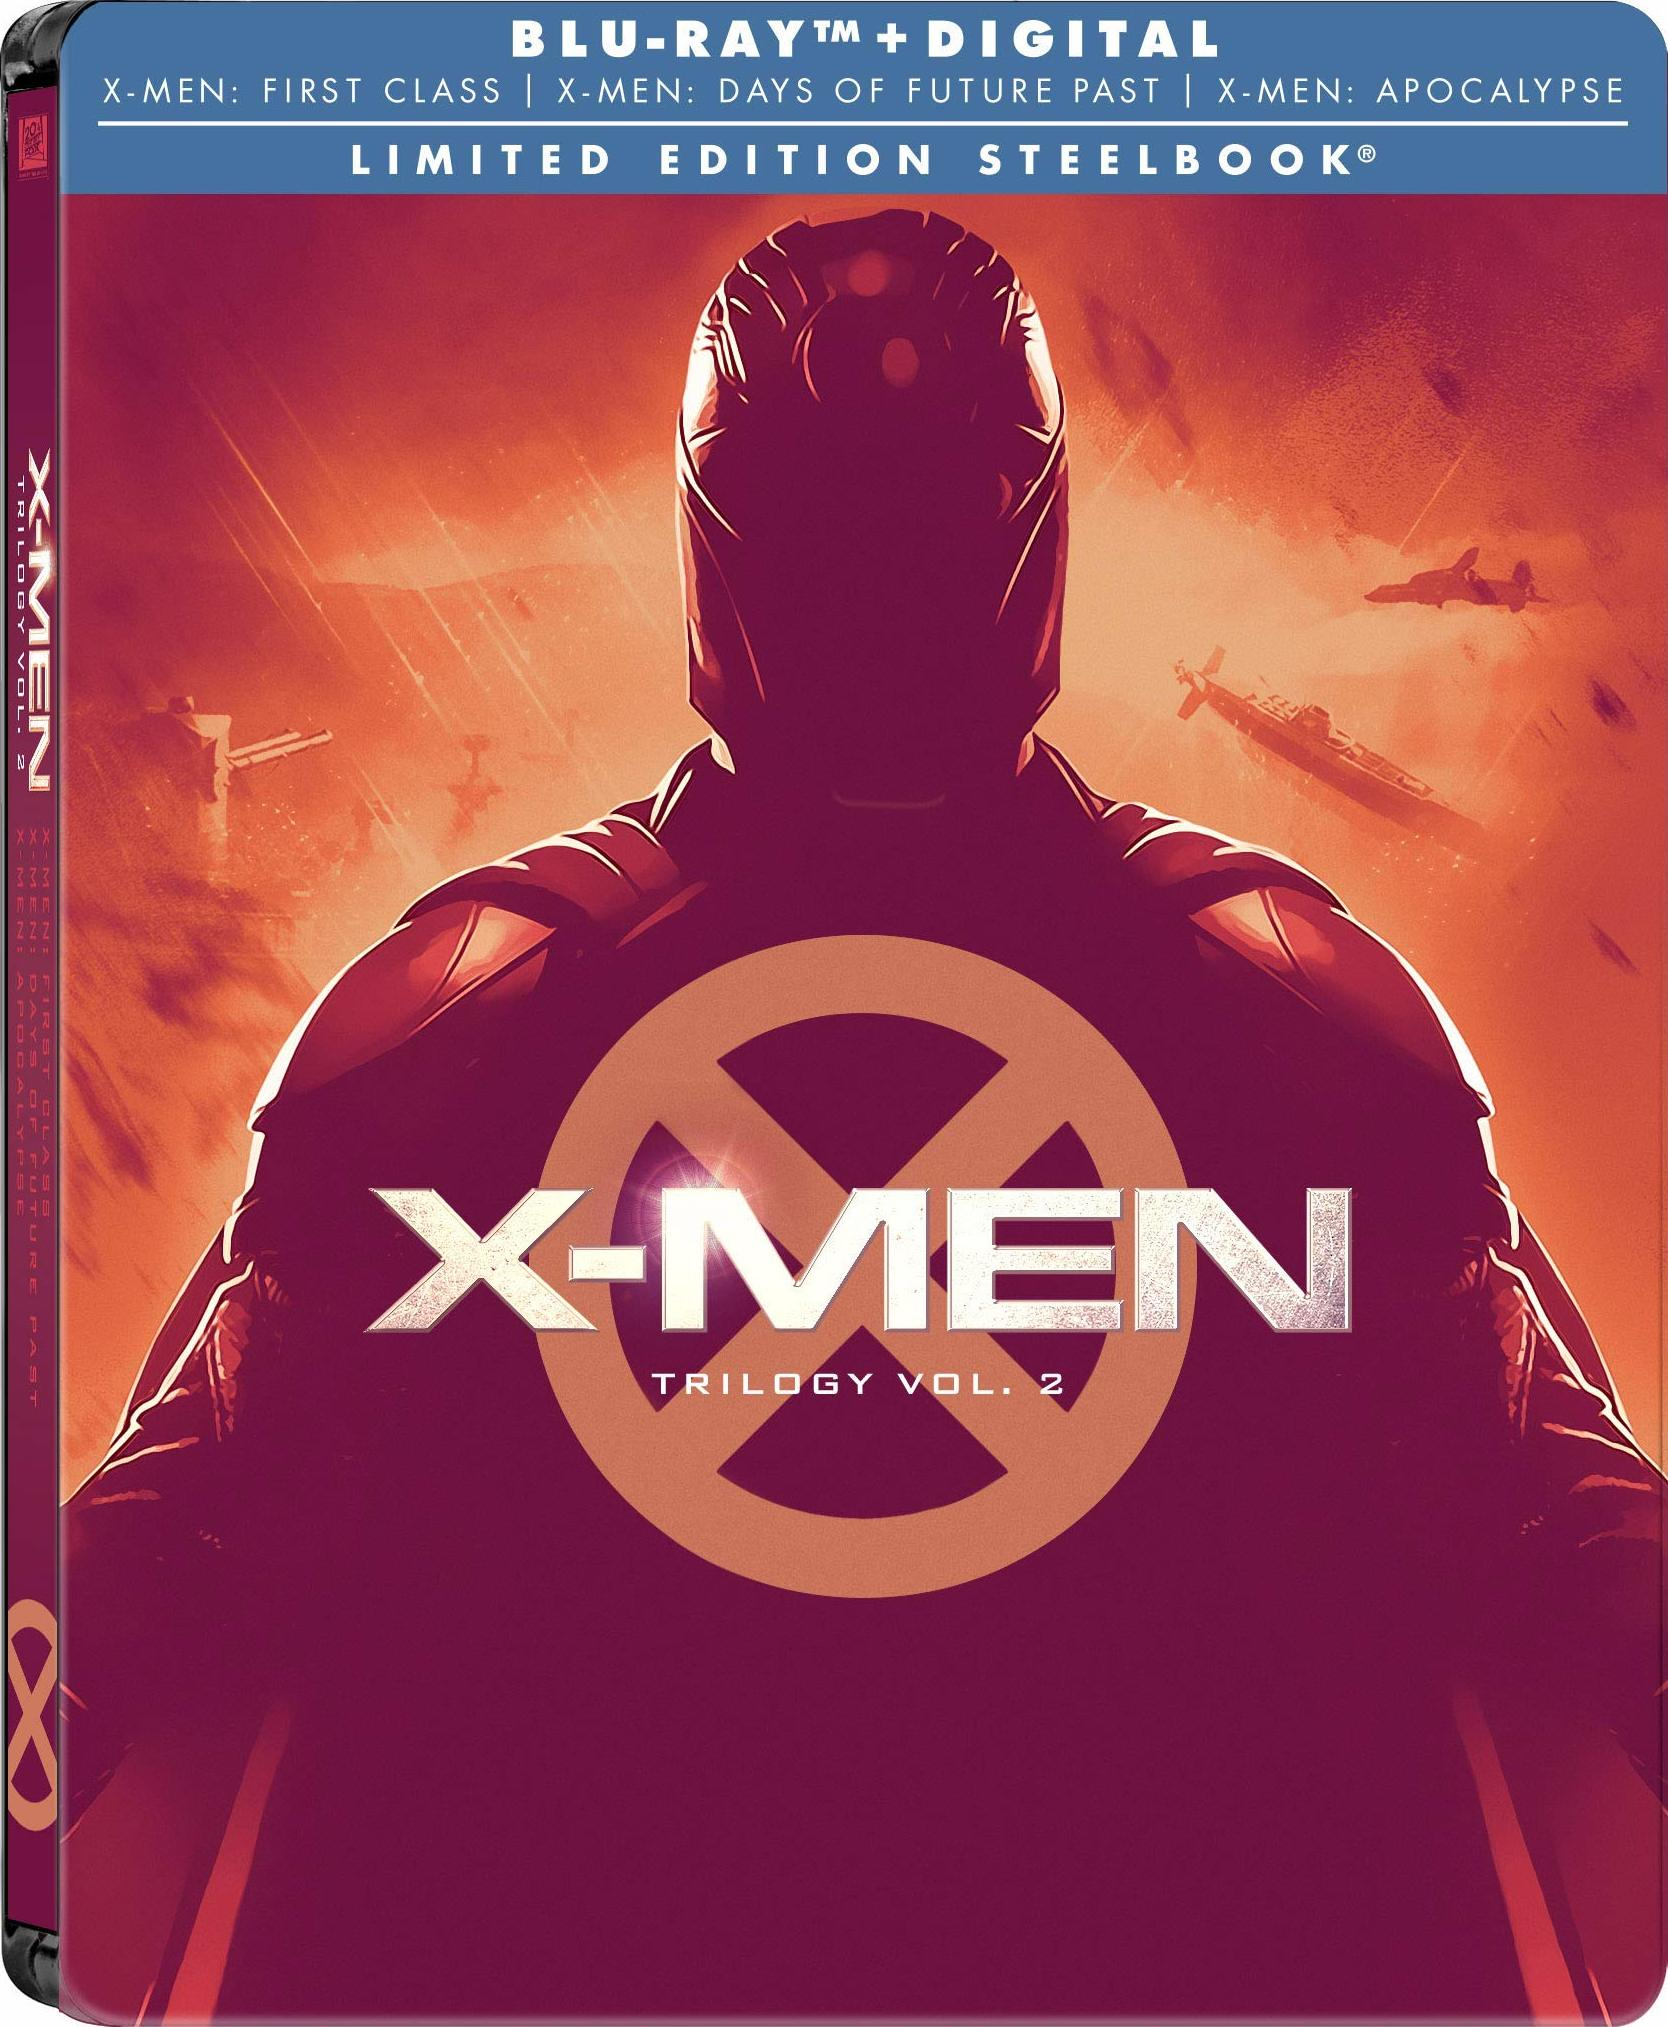 X-Men: Trilogy Vol. 2 (SteelBook)(Blu-ray)(Region A)